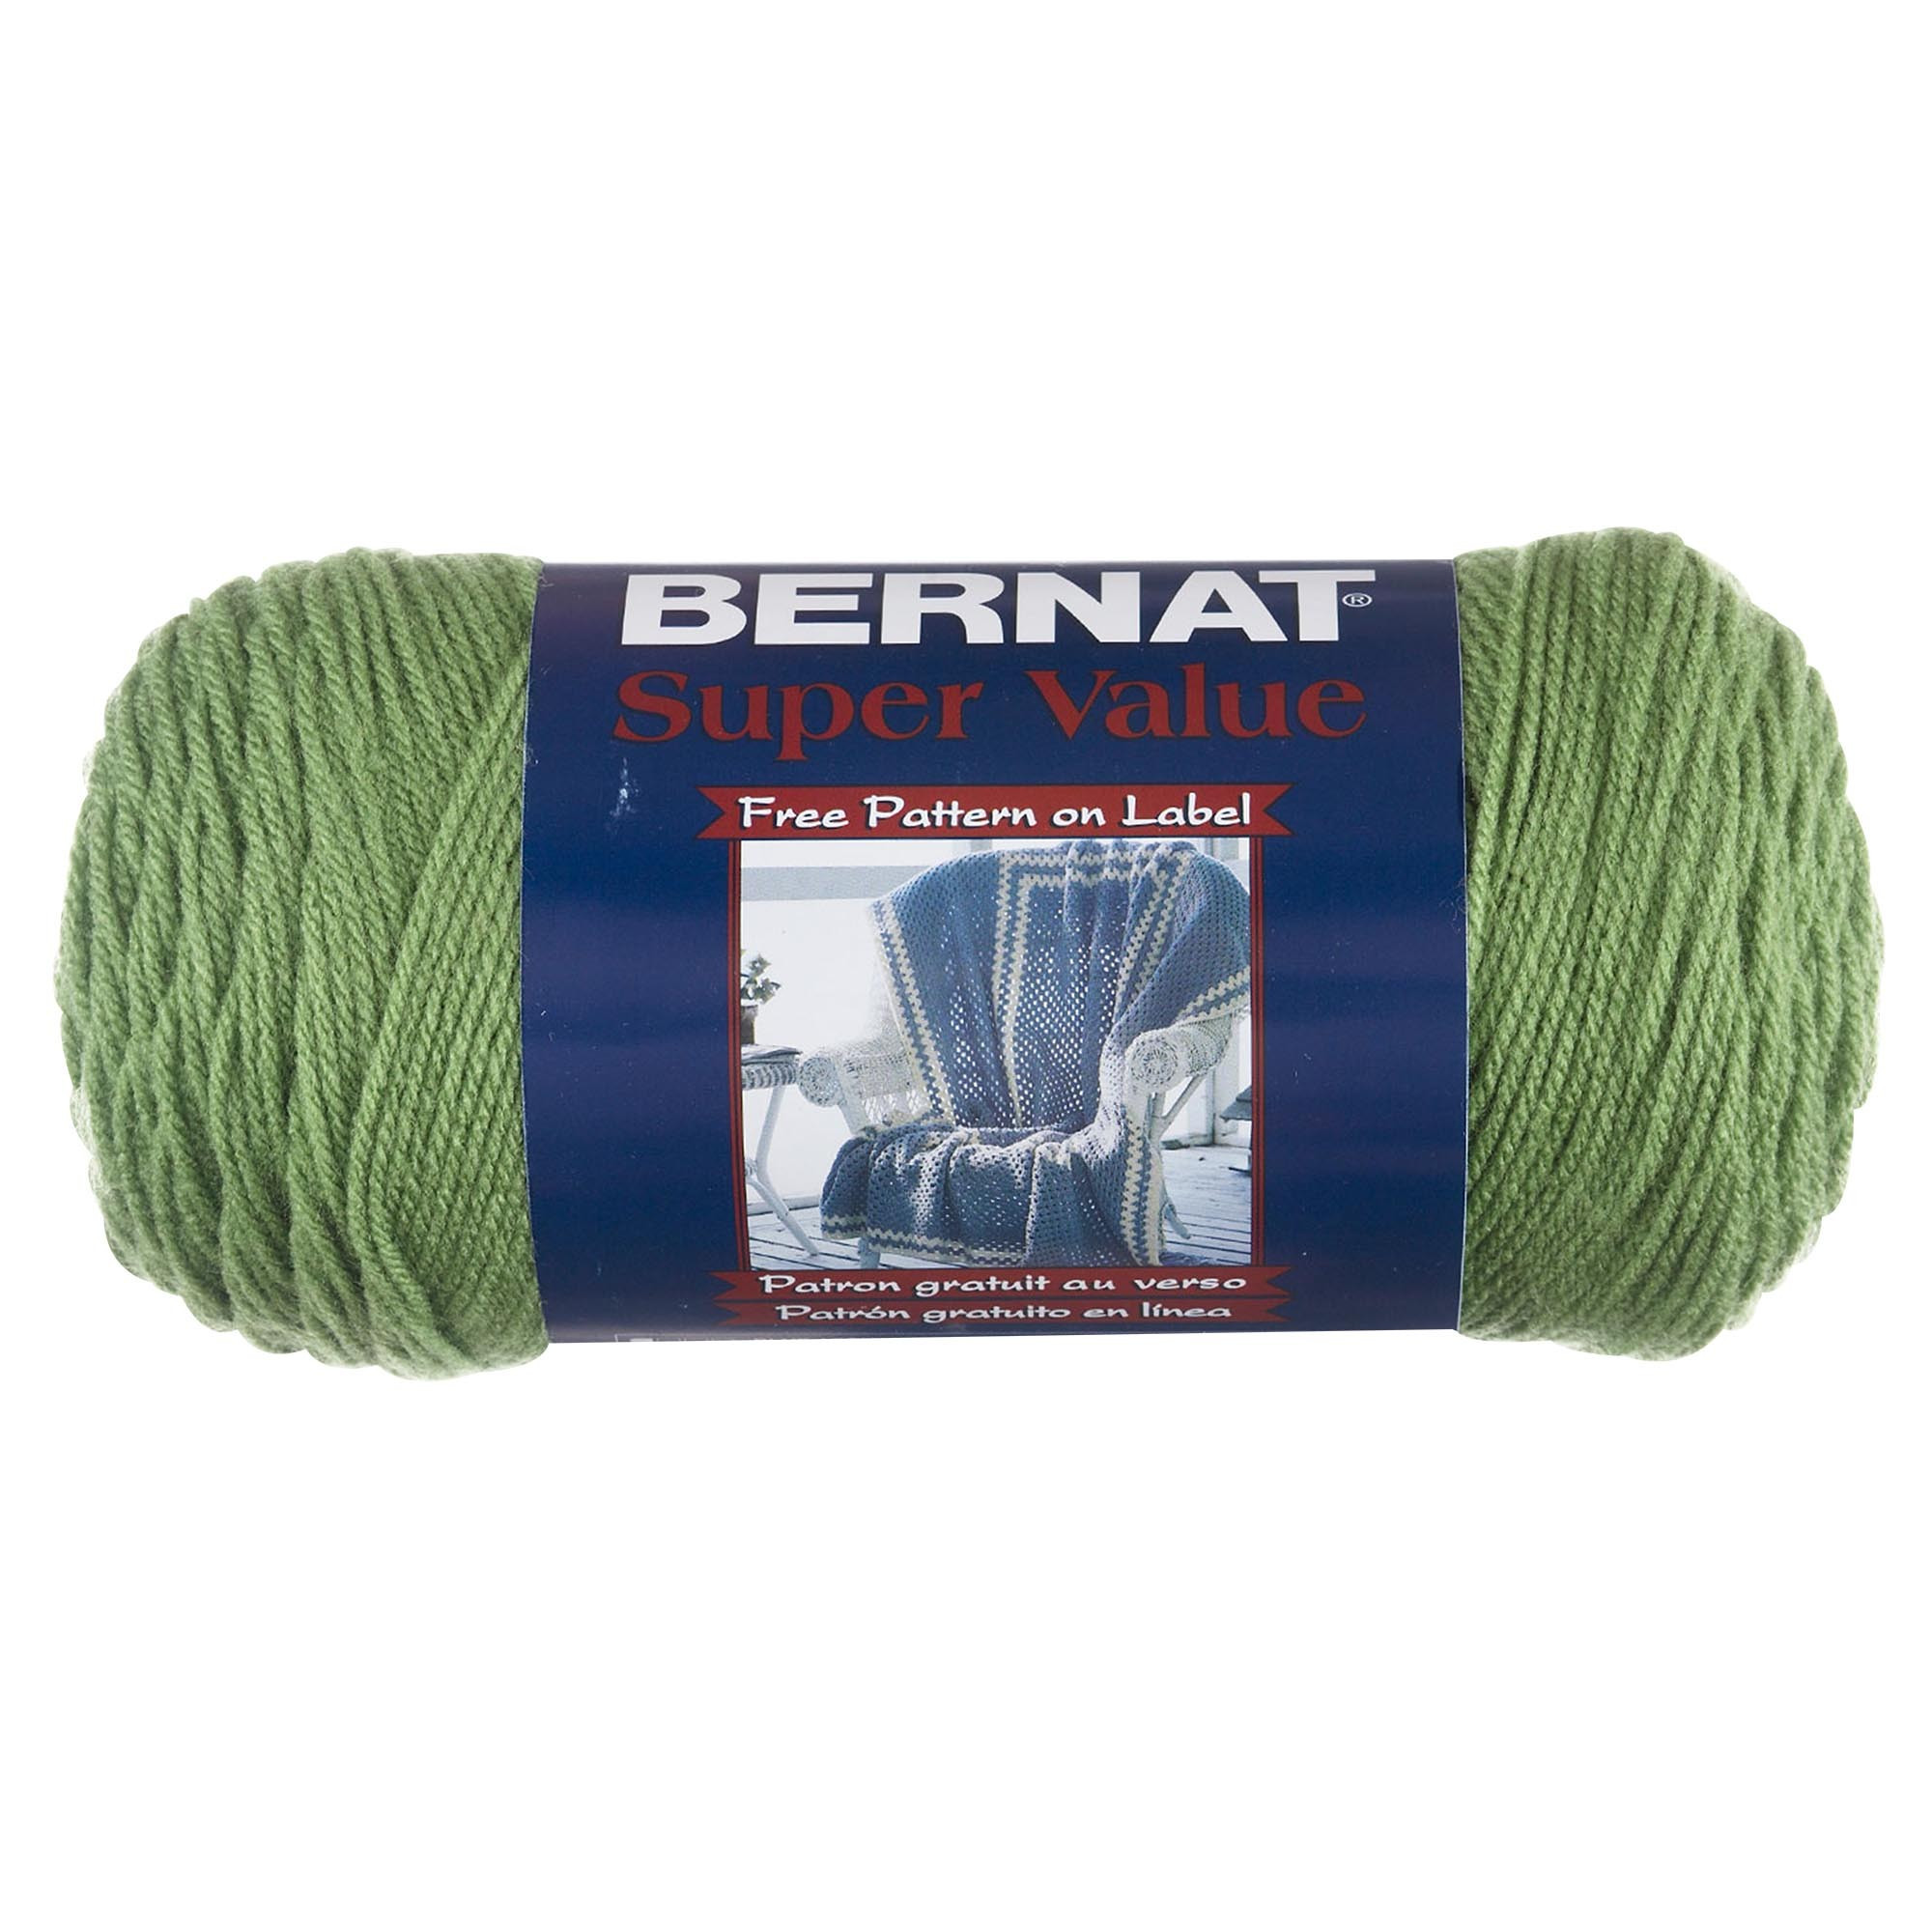 Bernat Super Value Lovely Bernat Super Value Knitting Yarn 197g 142g Of Beautiful 46 Pics Bernat Super Value